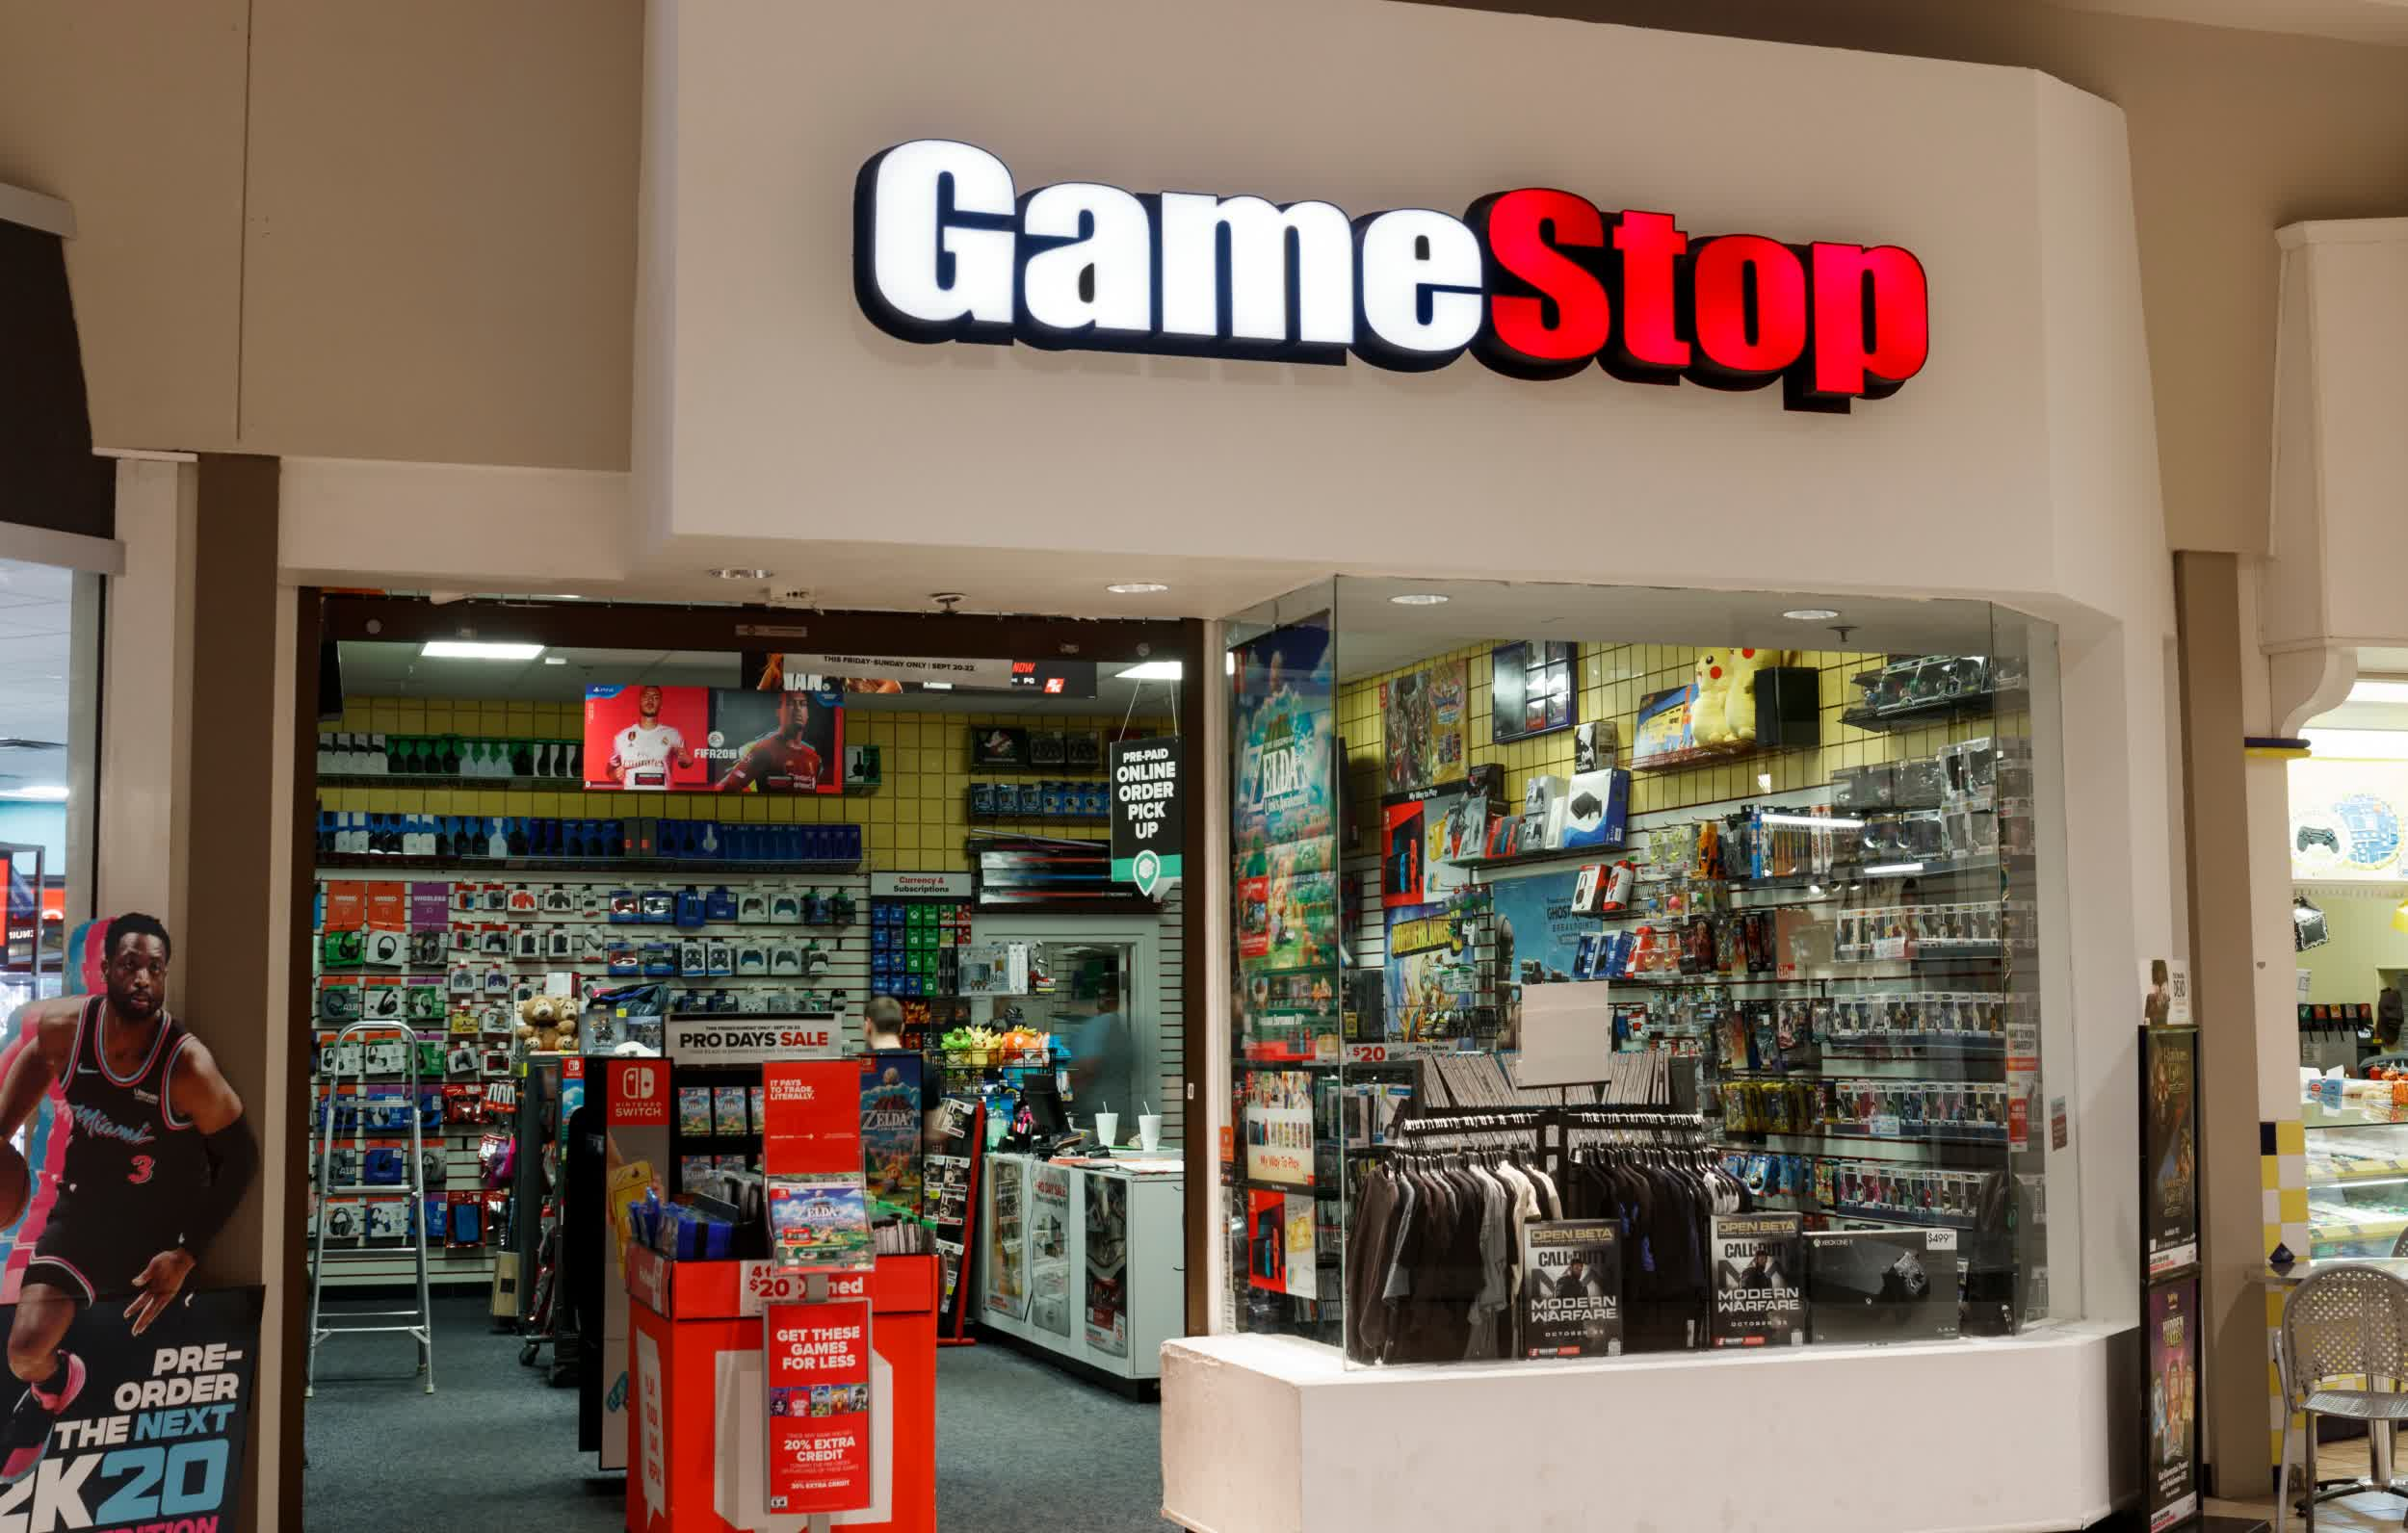 GameStop expands into PC hardware, now selling RTX 3000 cards